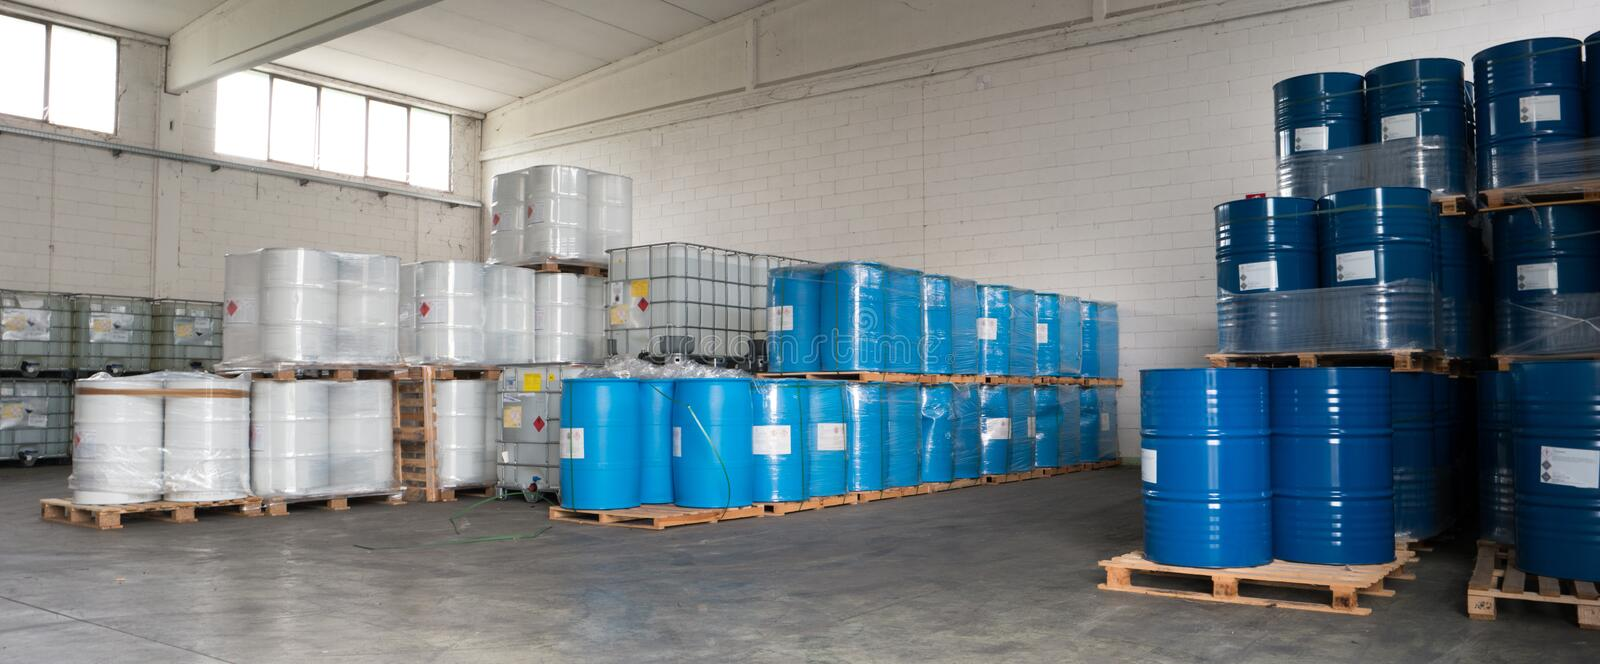 Metal drums stored in warehouse royalty free stock photos